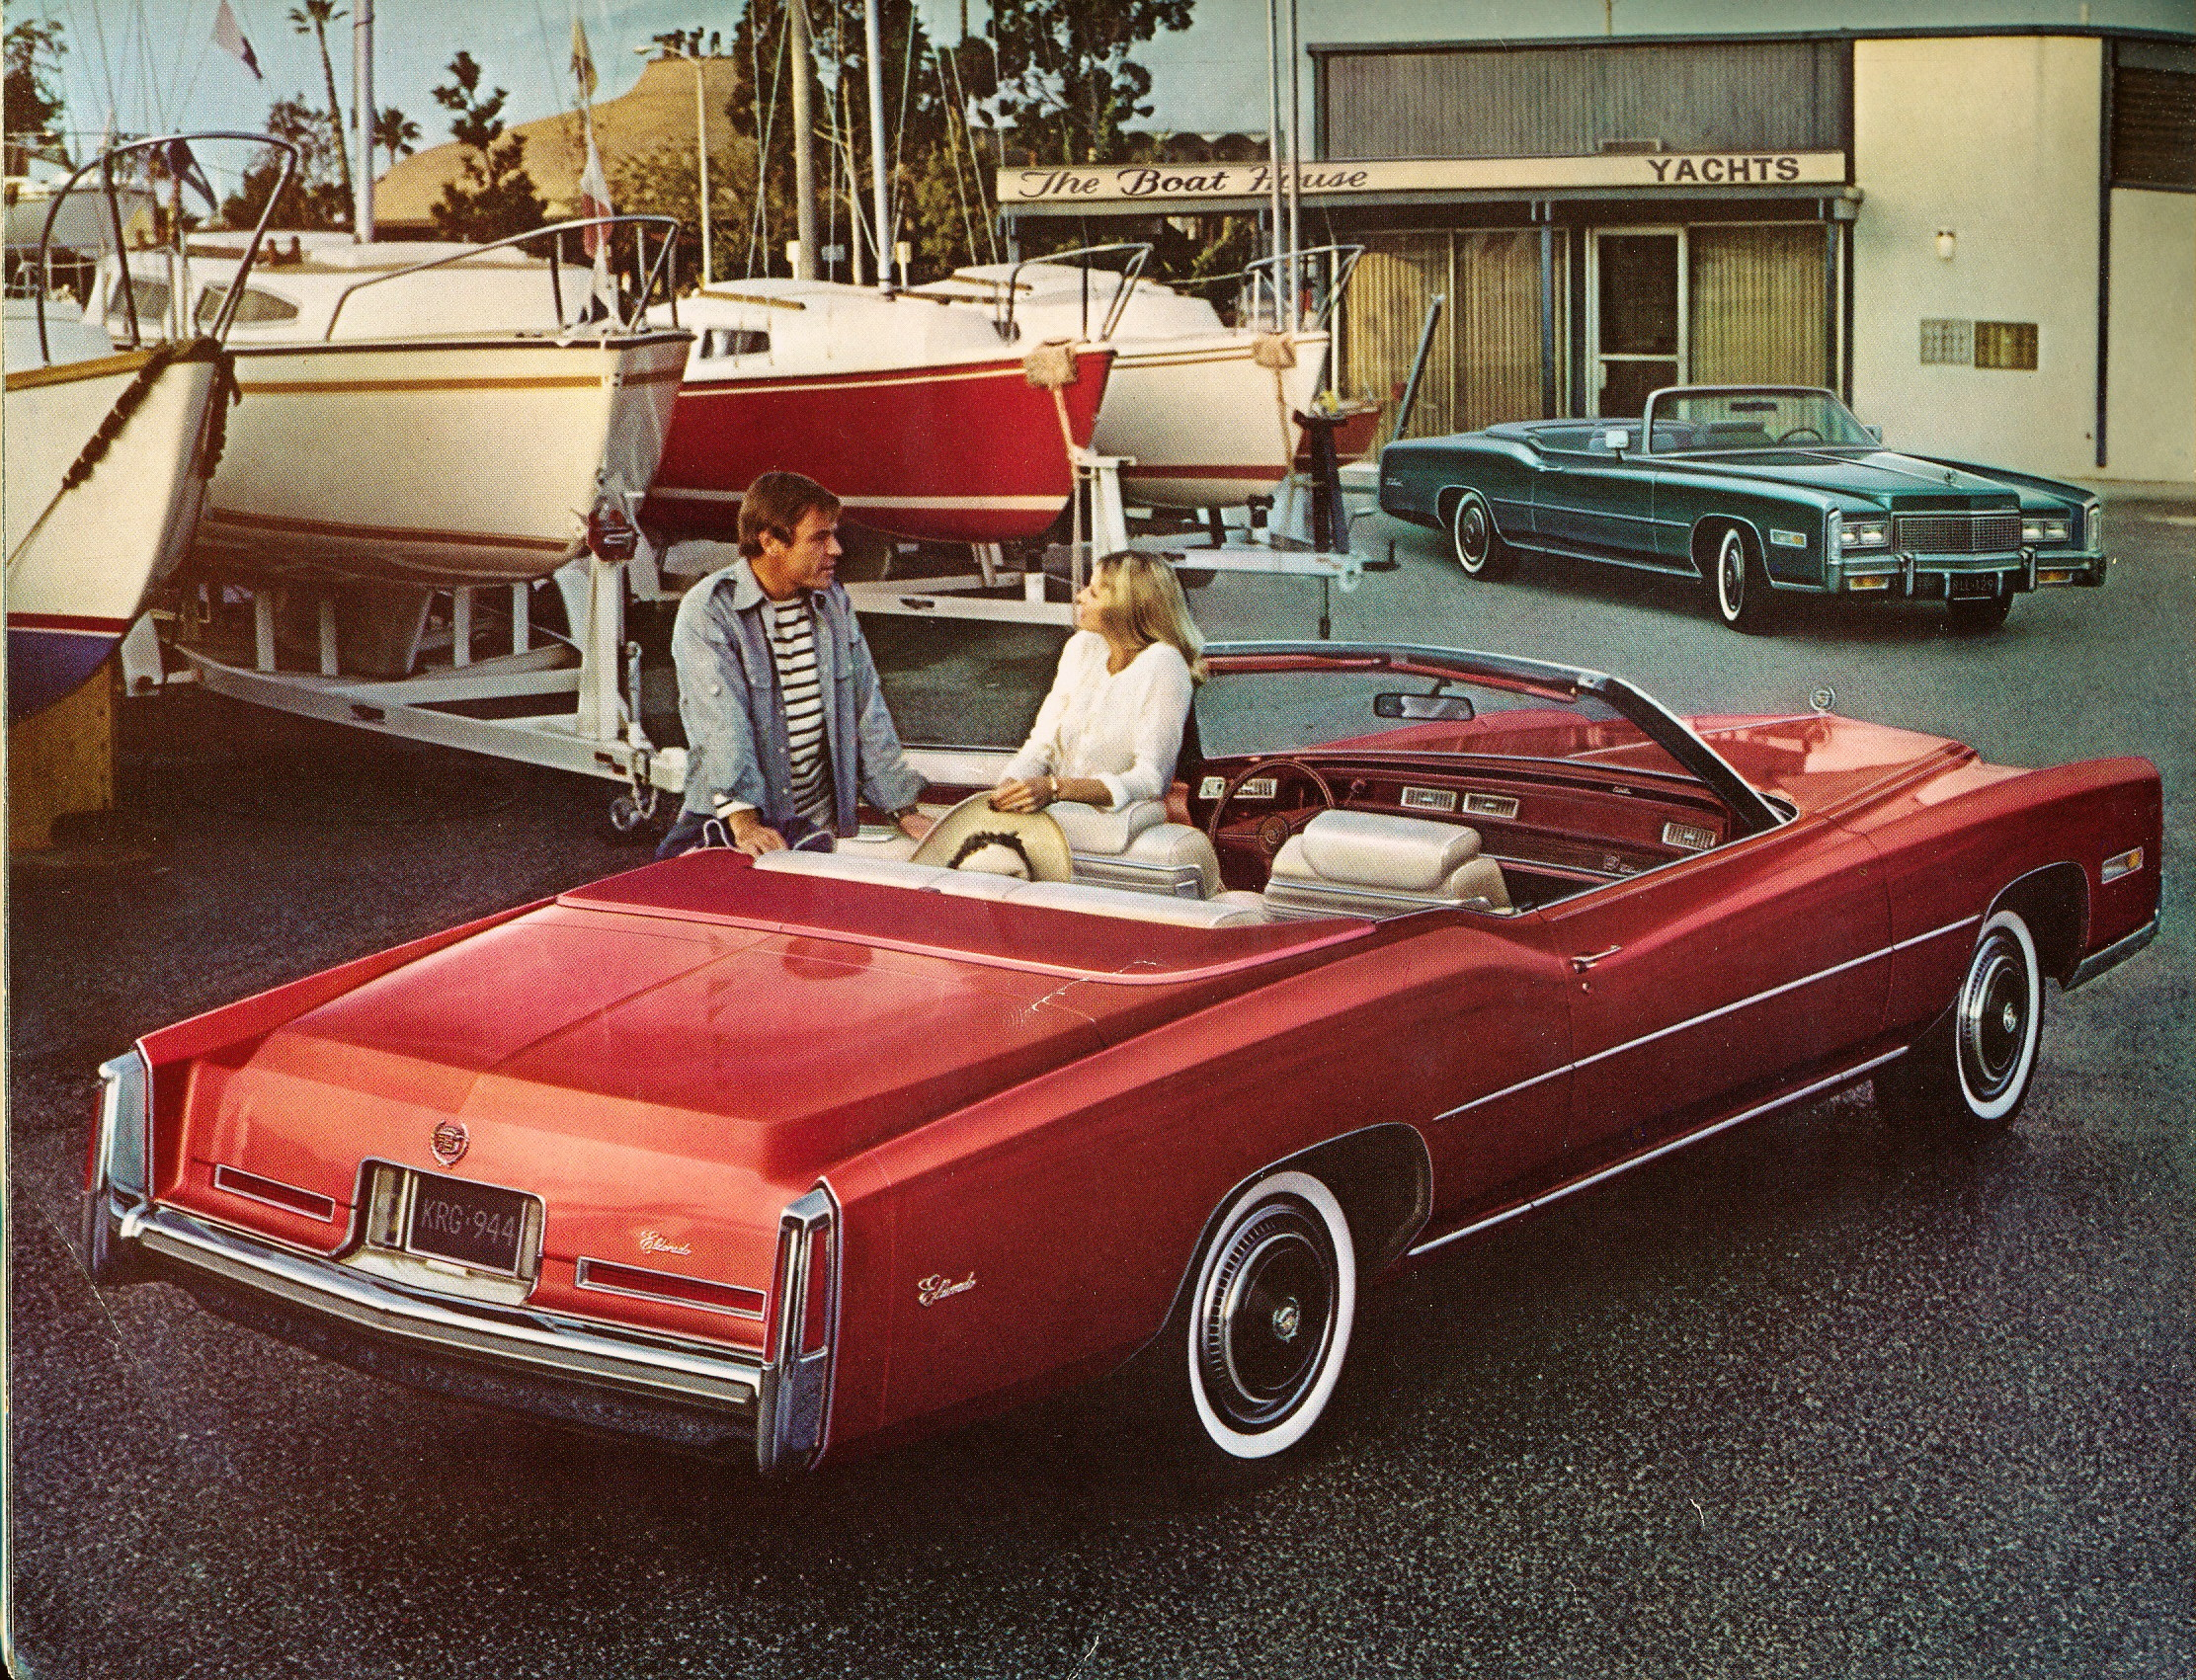 ville sotc design hunting of car de thumb the large song convertible cadillac cool